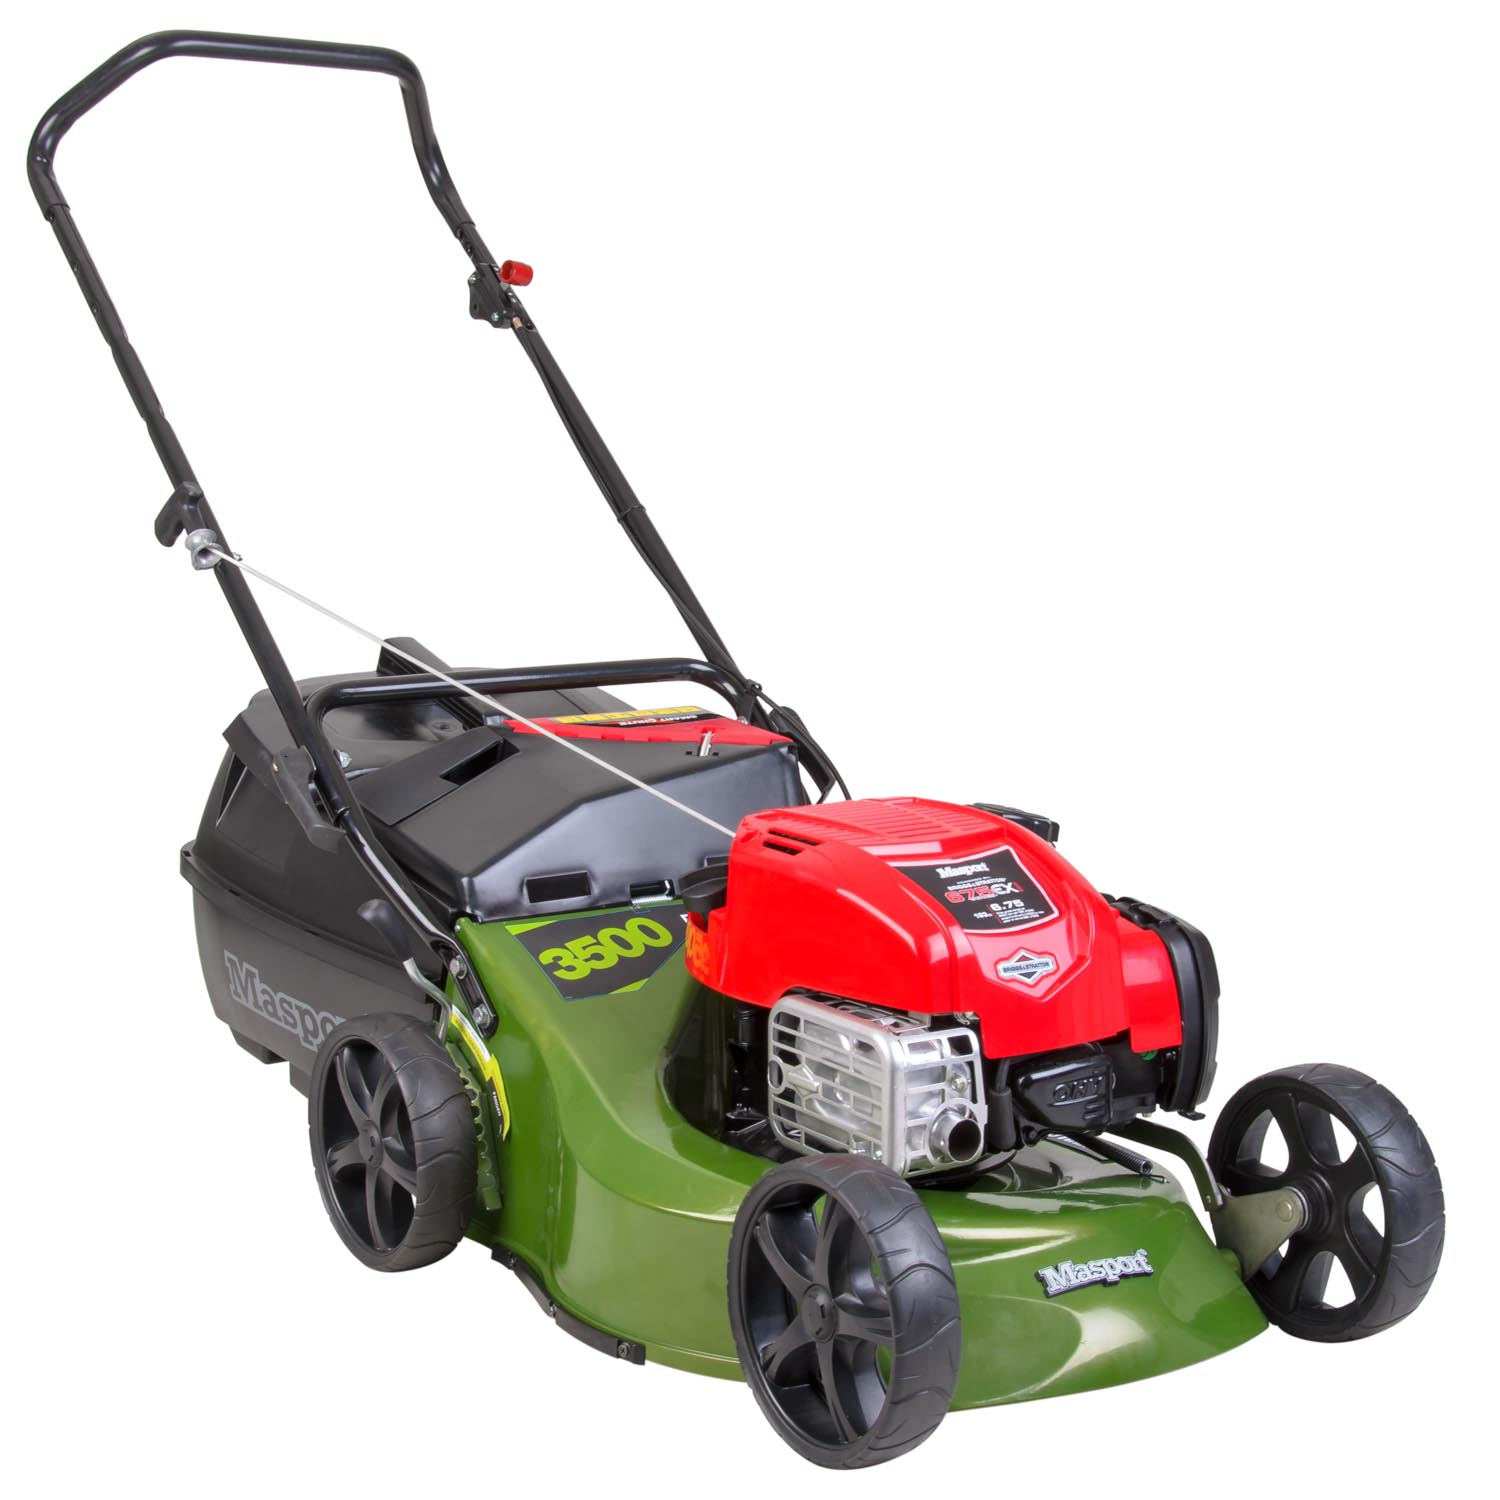 Masport President 3500AL 2017 Lawnmower